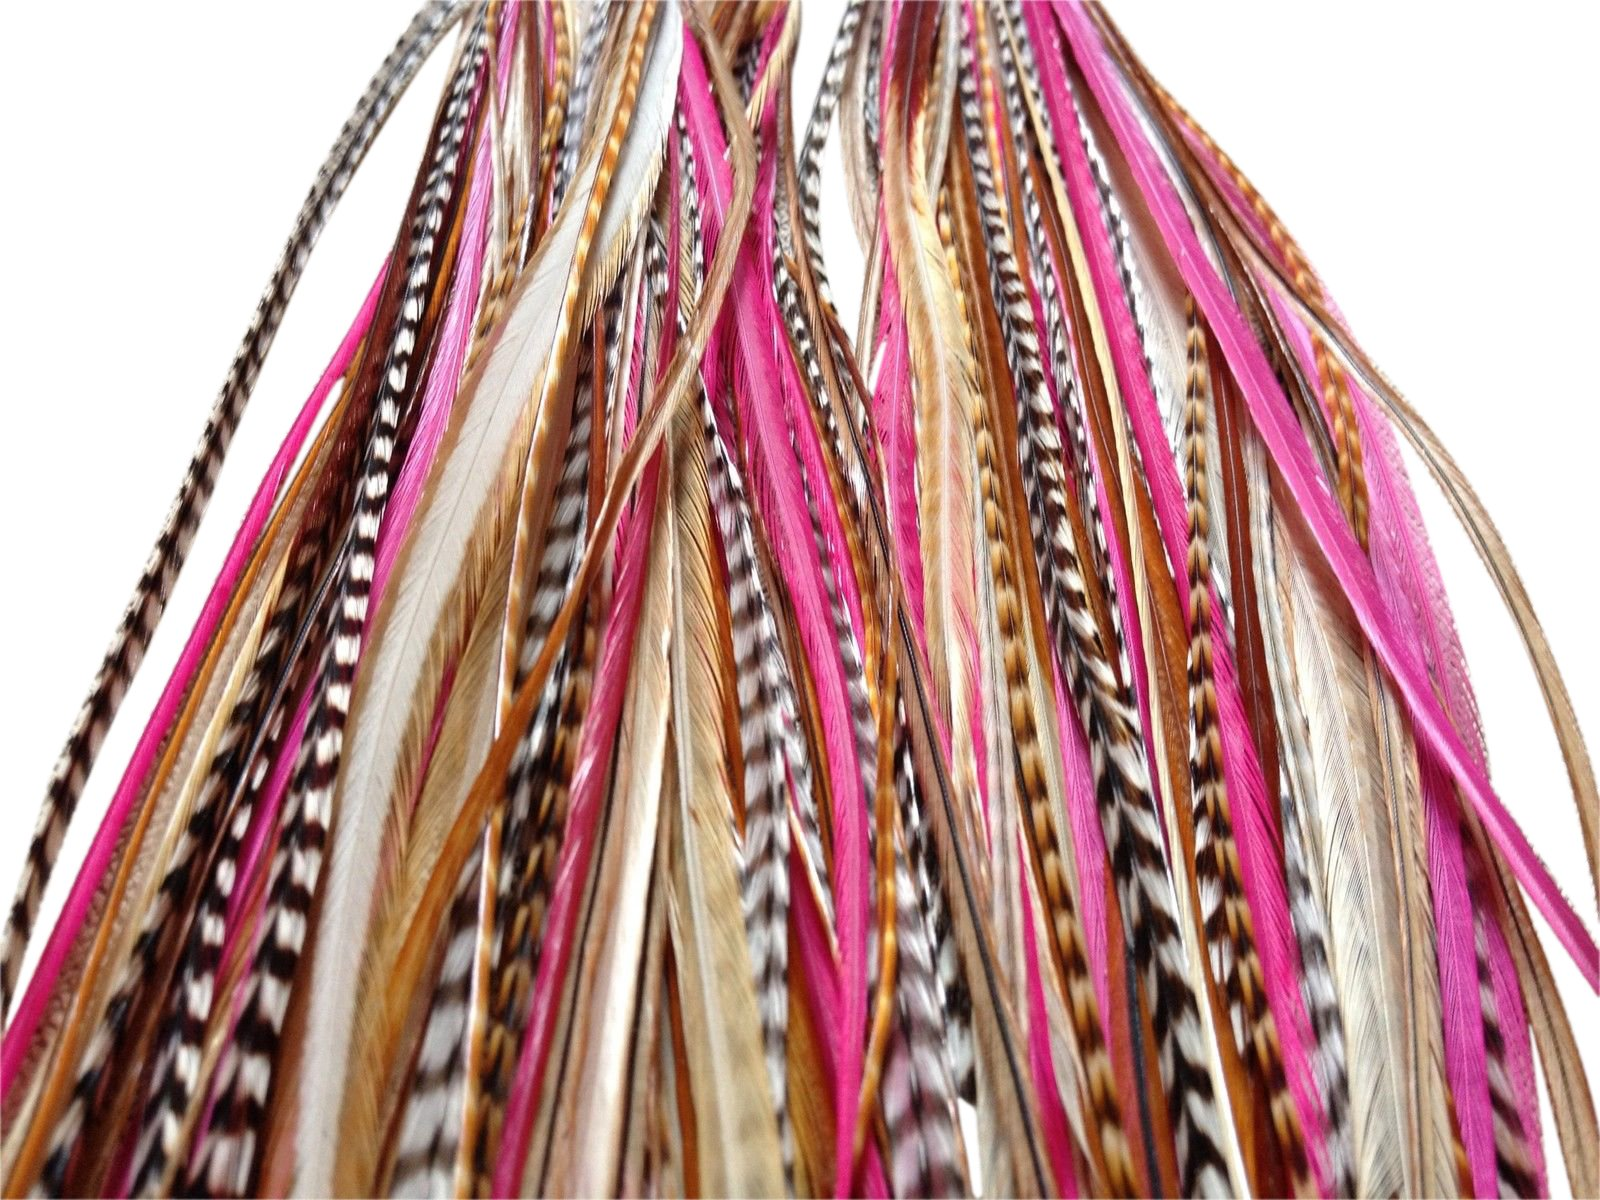 Feather Hair Extensions, 100% Real Rooster Feathers, 10 Long Thin Loose Individual Feathers, By Feather Lily